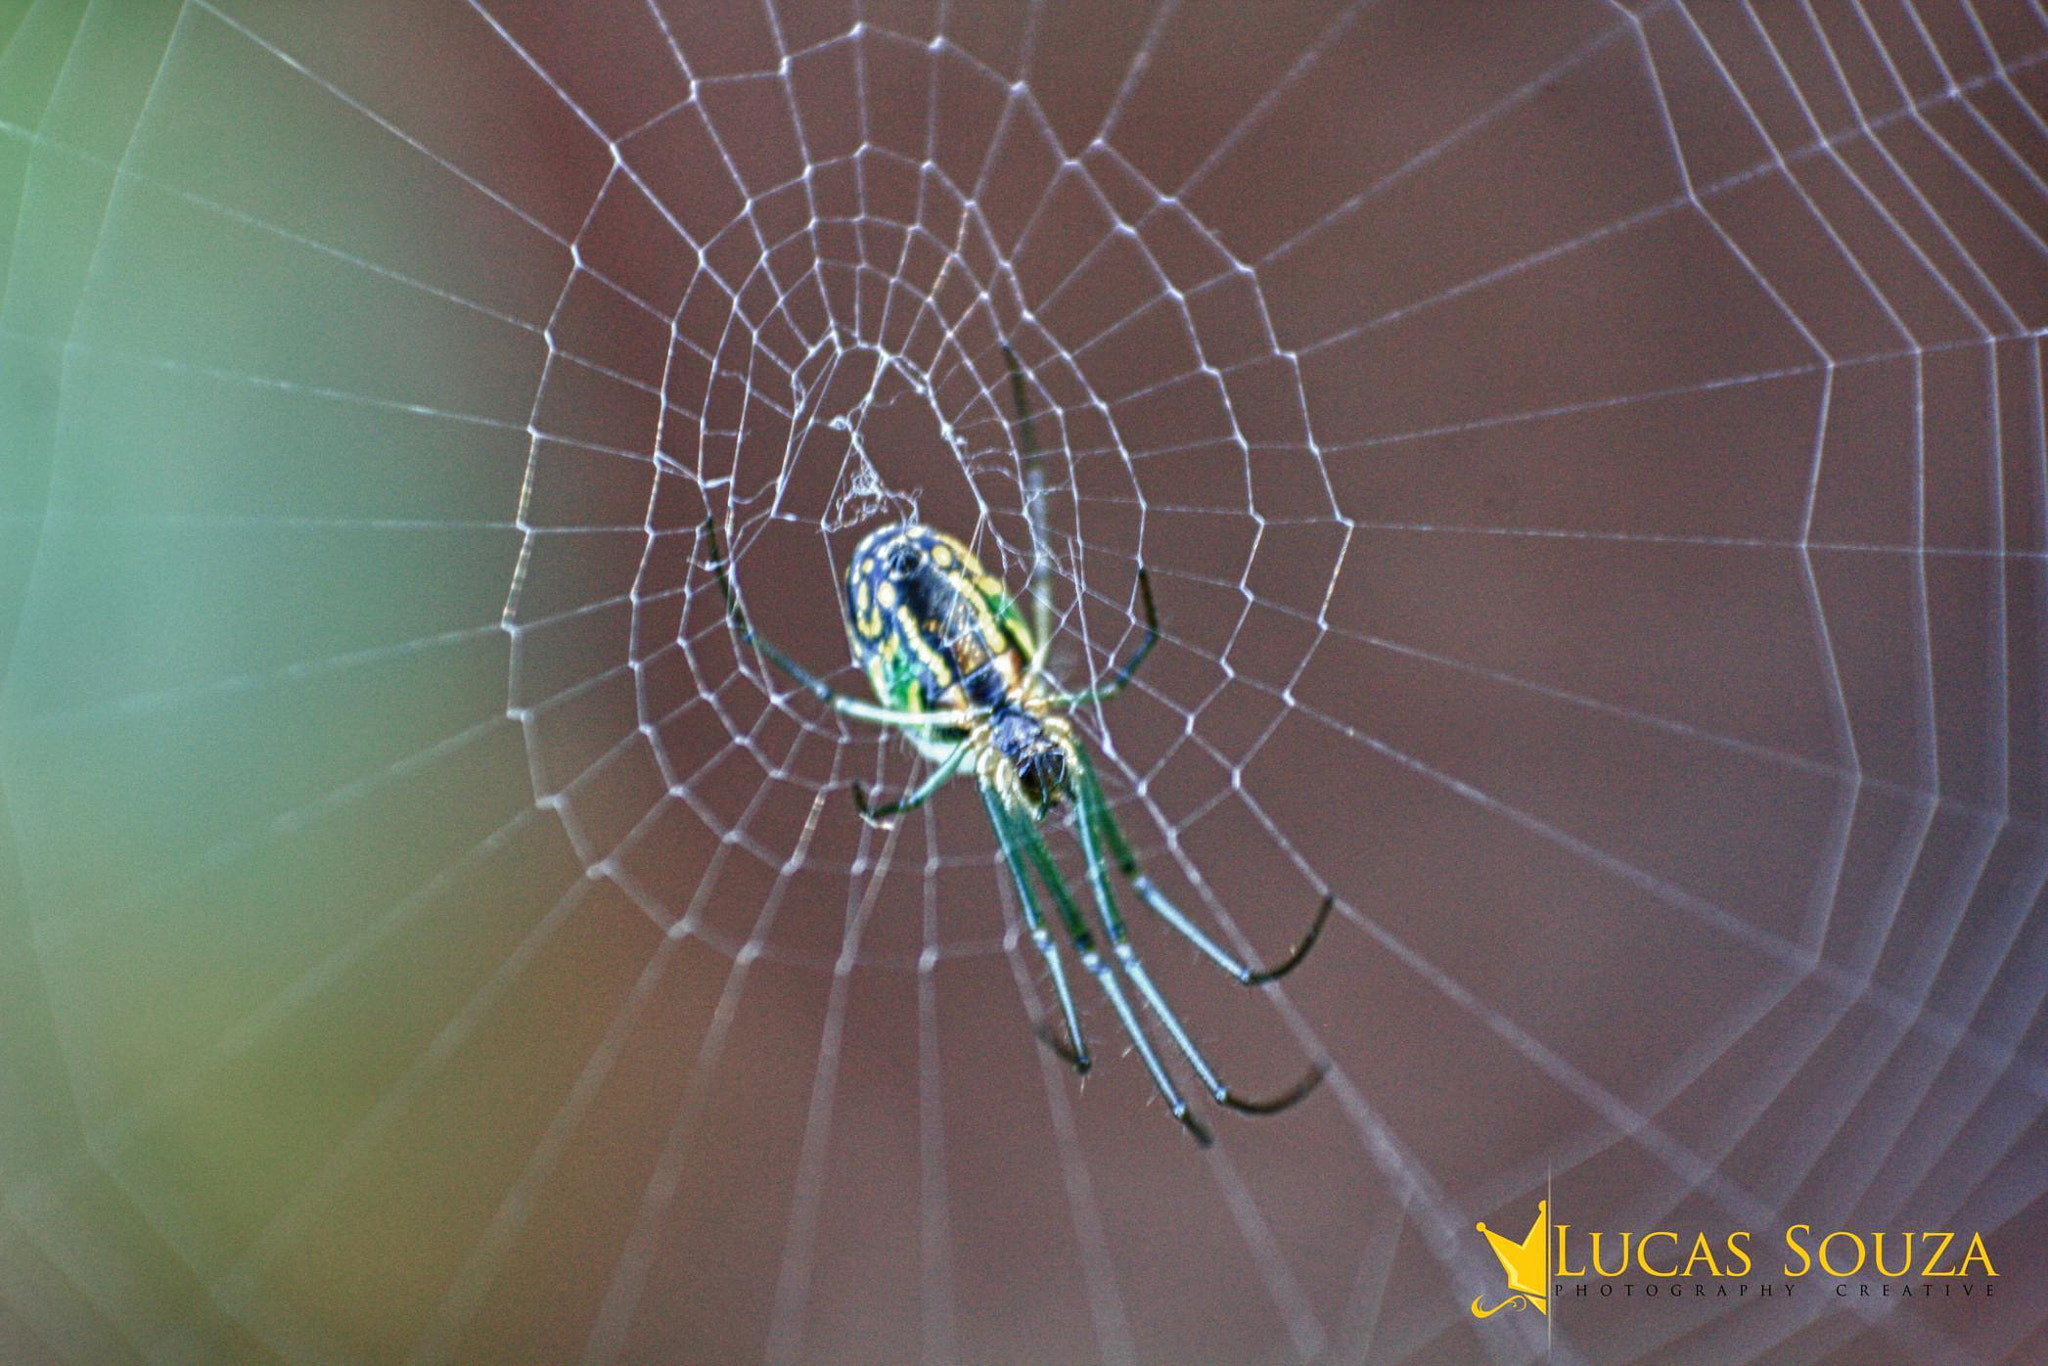 Photograph spider by Lucas Souza on 500px